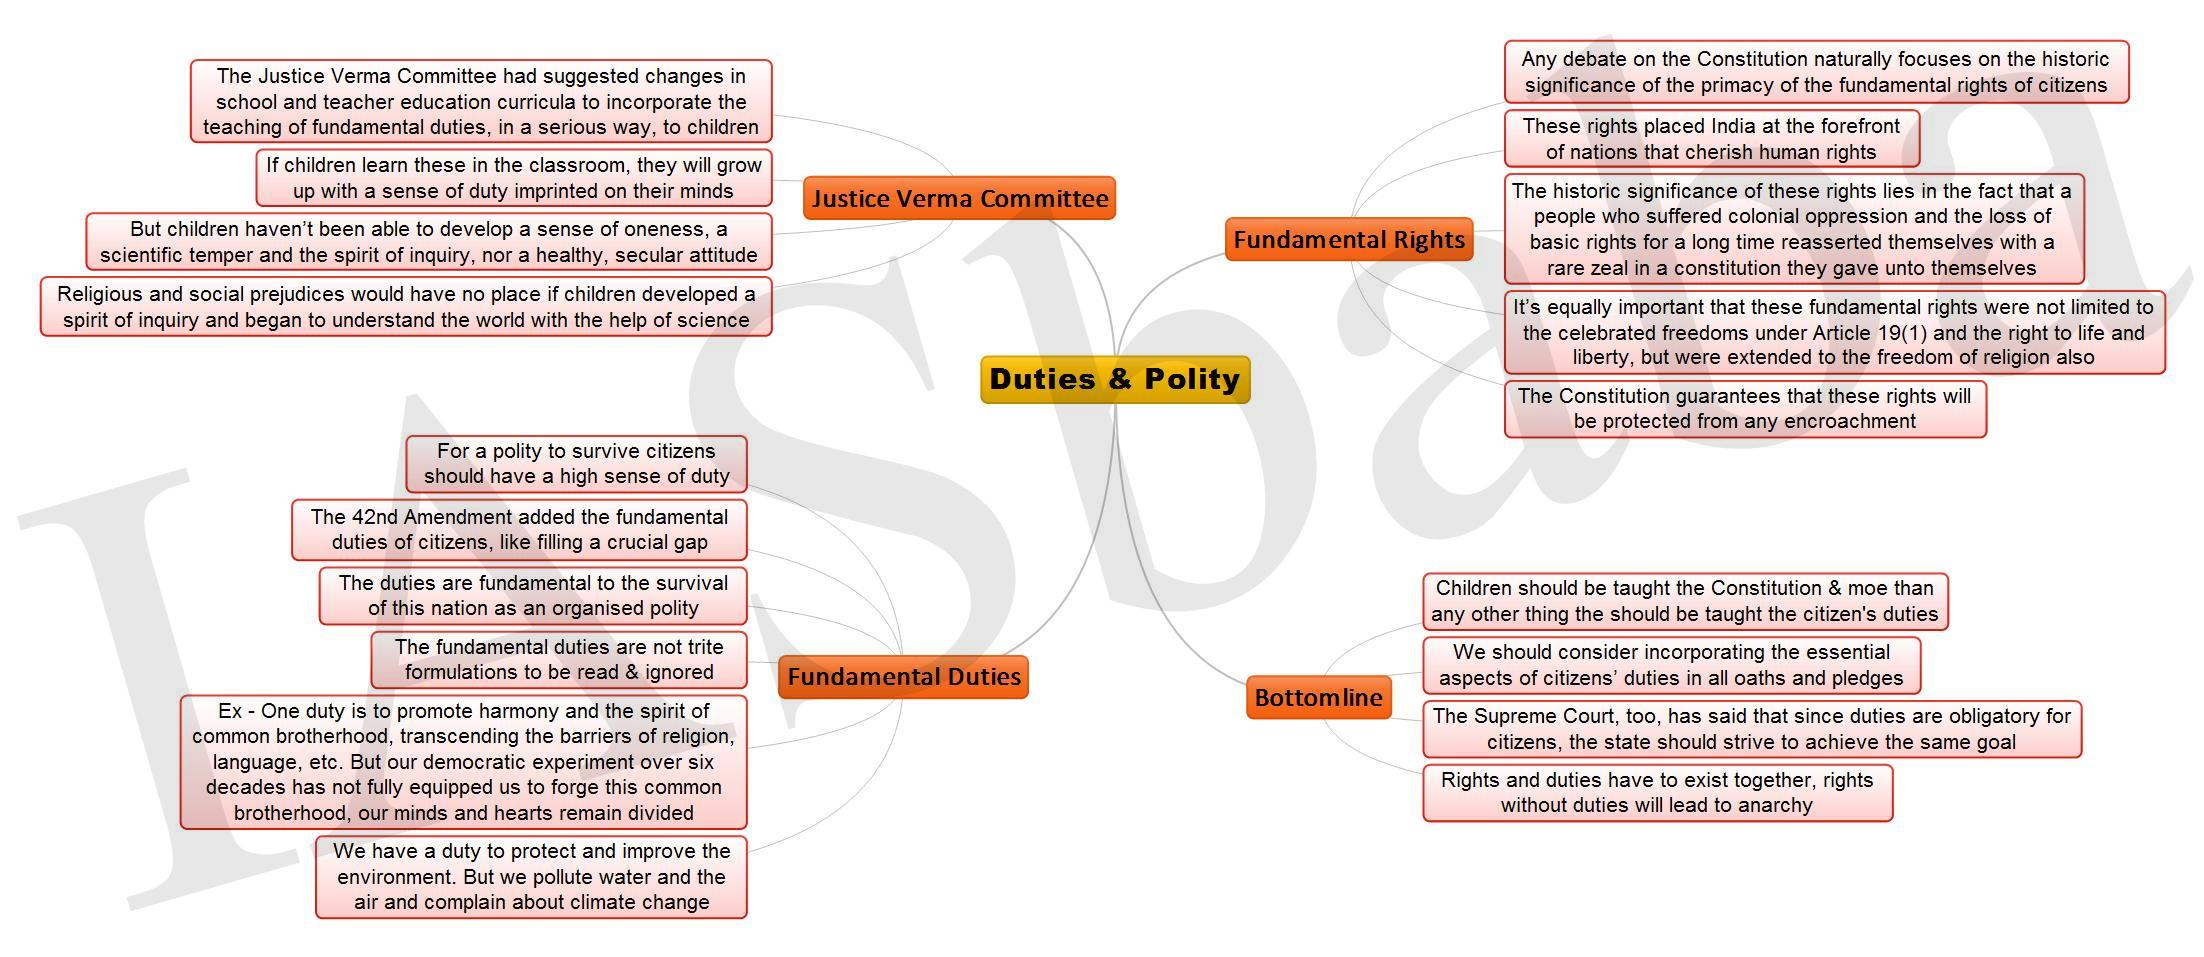 Duties and Polity JPEG